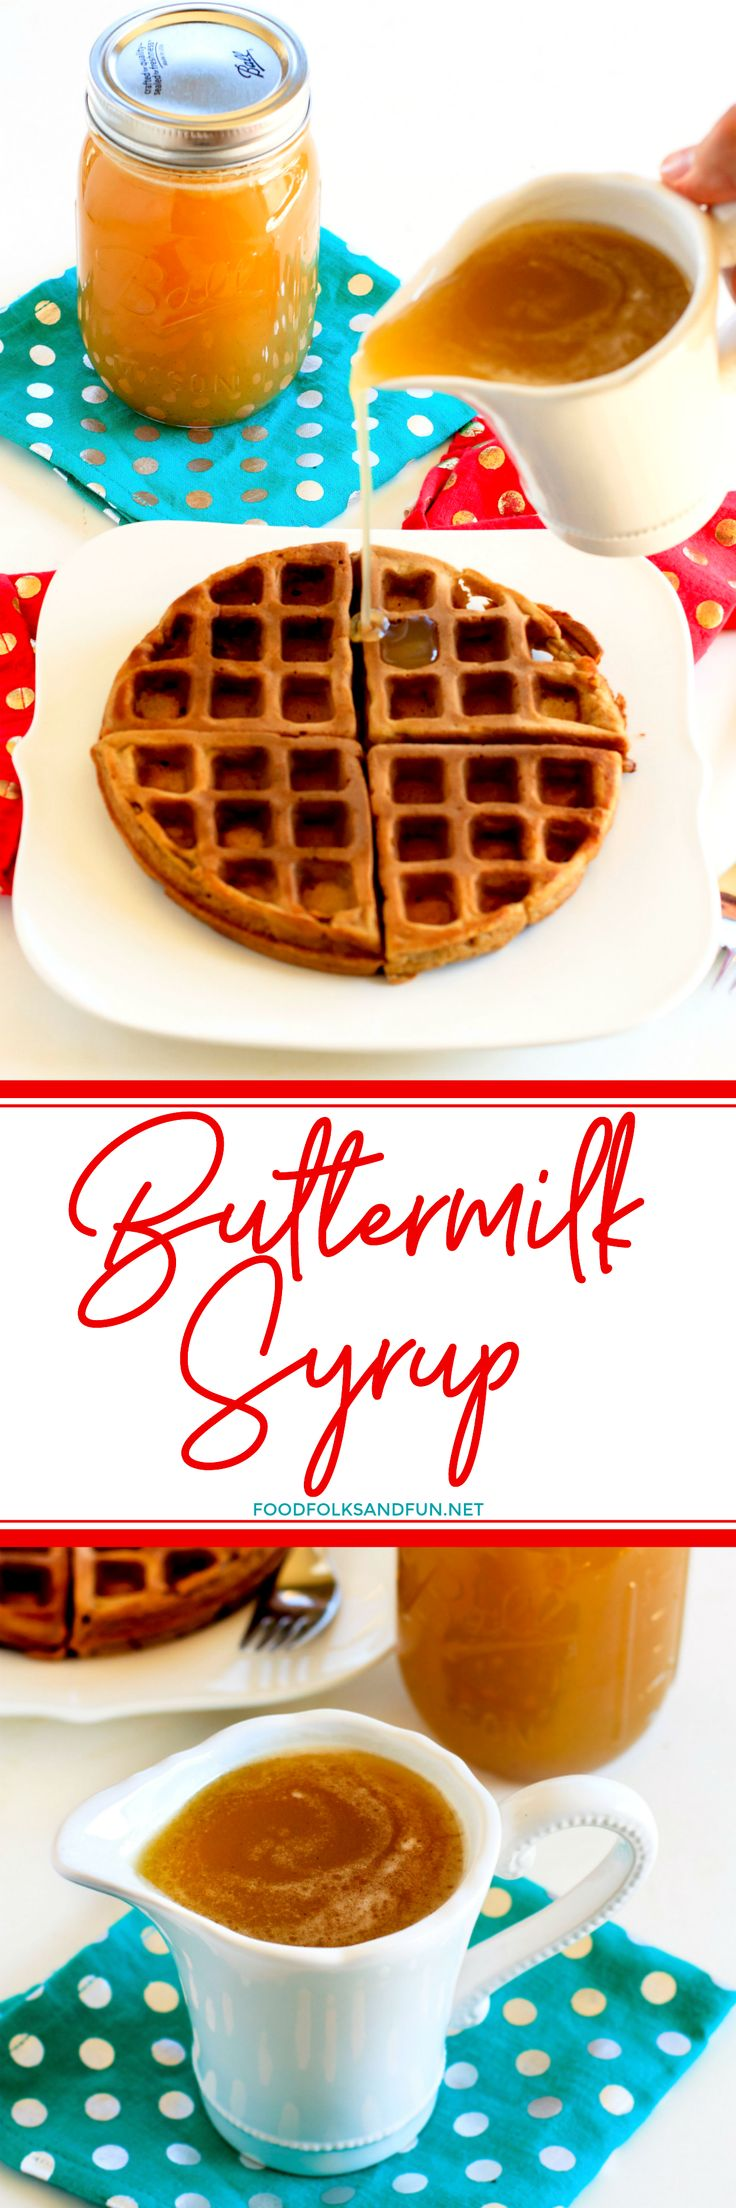 Homemade Buttermilk Syrup is the best syrup in the history of pancake and waffle syrups! It's buttery, delicious, and SO easy to make.